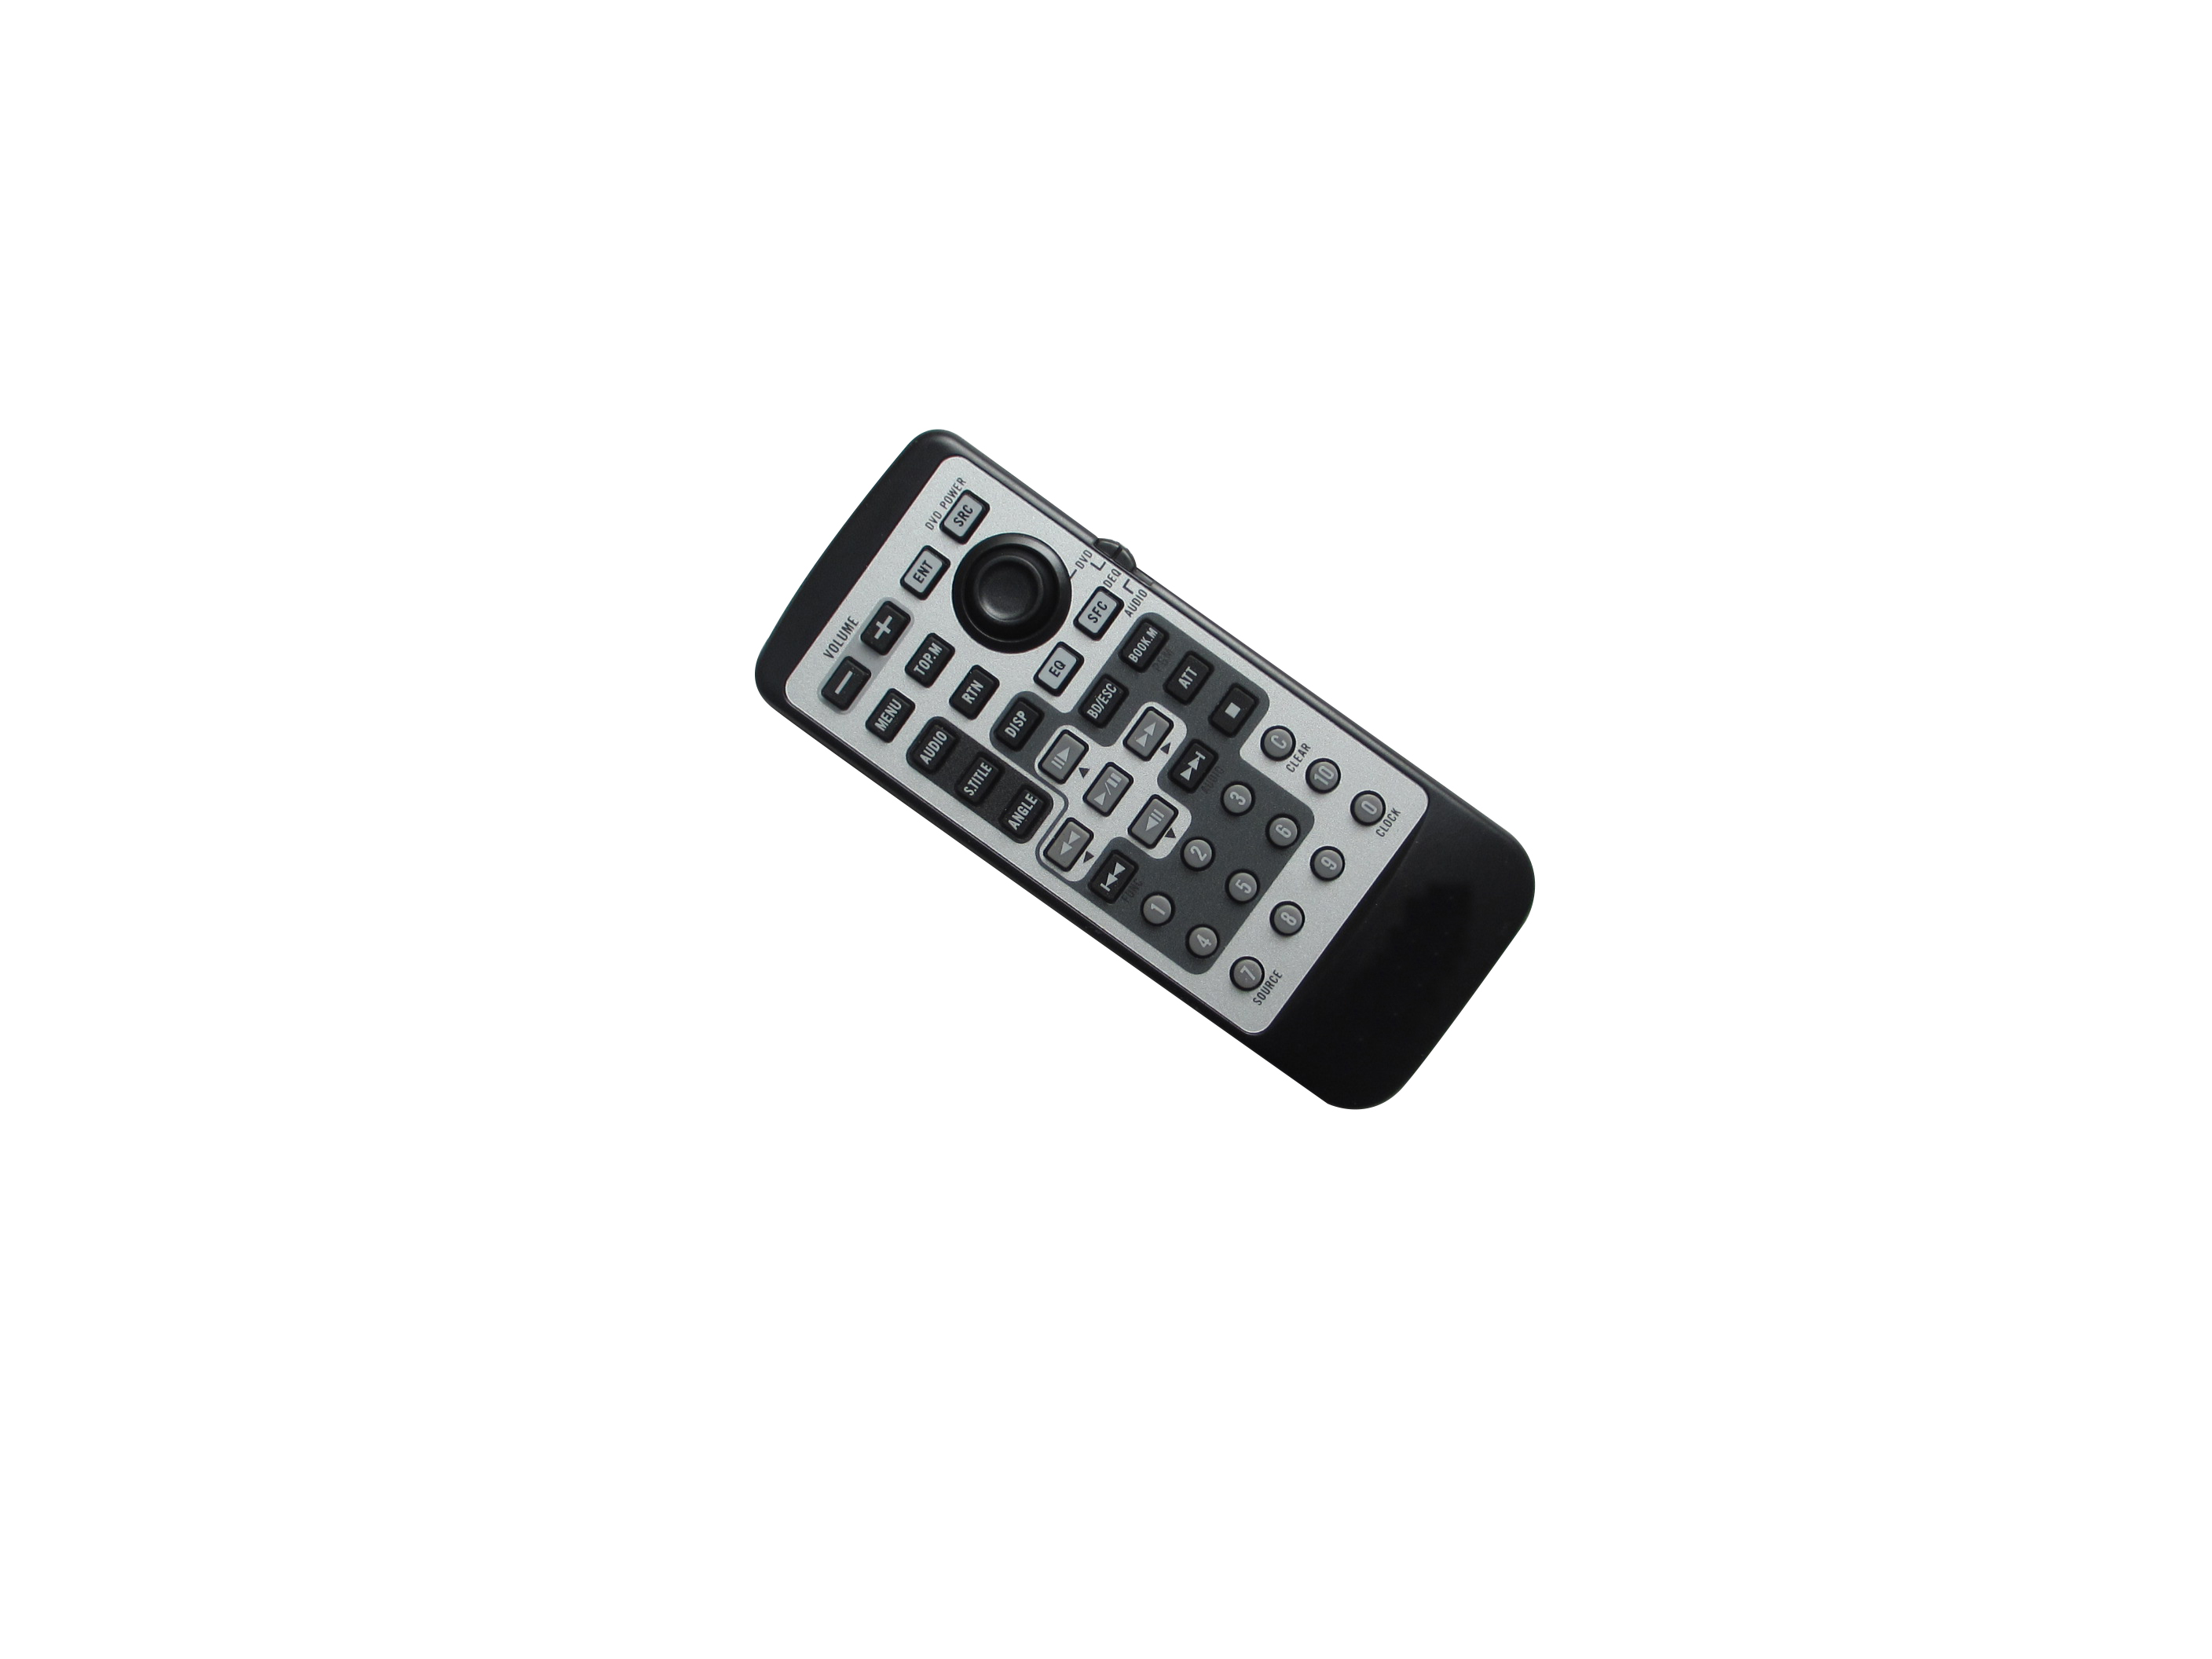 Remote Control For Pioneer AVR-W6100 DEH-P860 DEH-P8600 DEH-P960 DEH-P9600 DEH-P1Y DEH-P770MP DEH-P7750MP CAR CD RDS AV Receiver image